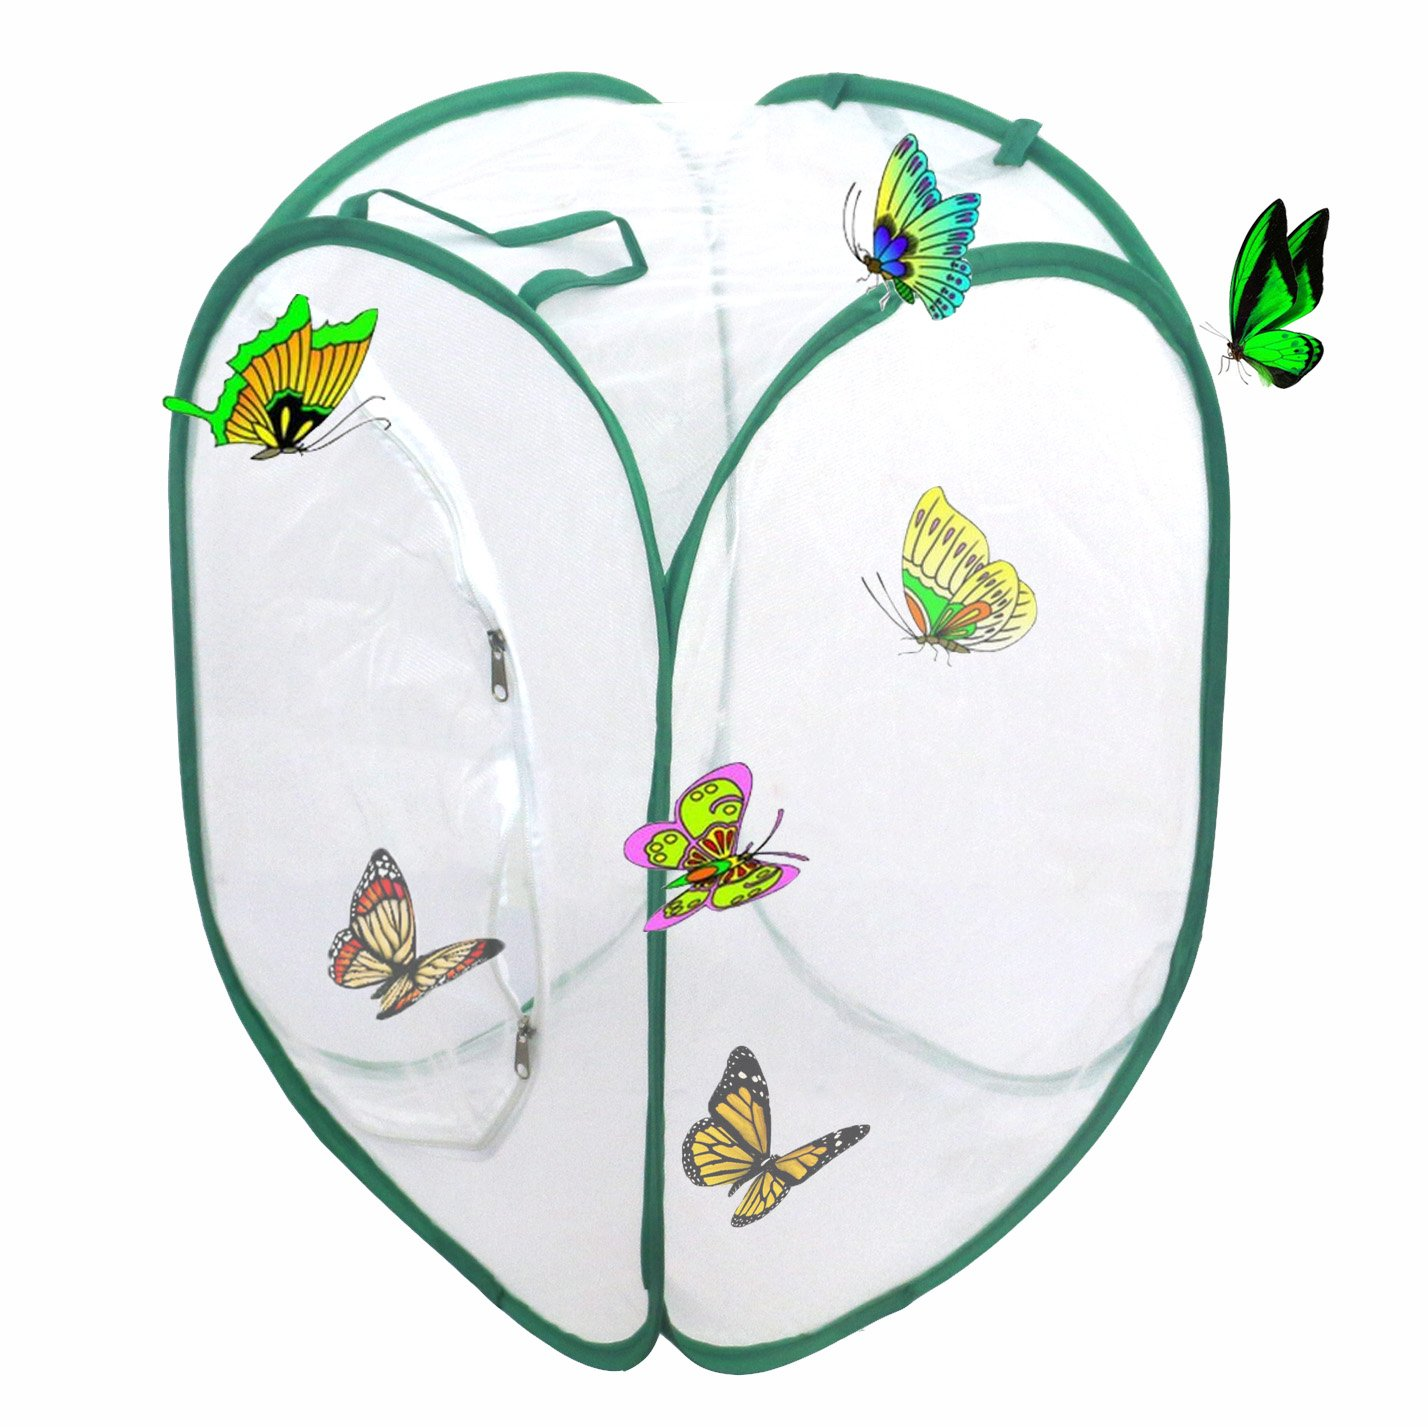 Trasfit Insect and Butterfly Habitat Terrarium - 23.6 Inches Tall